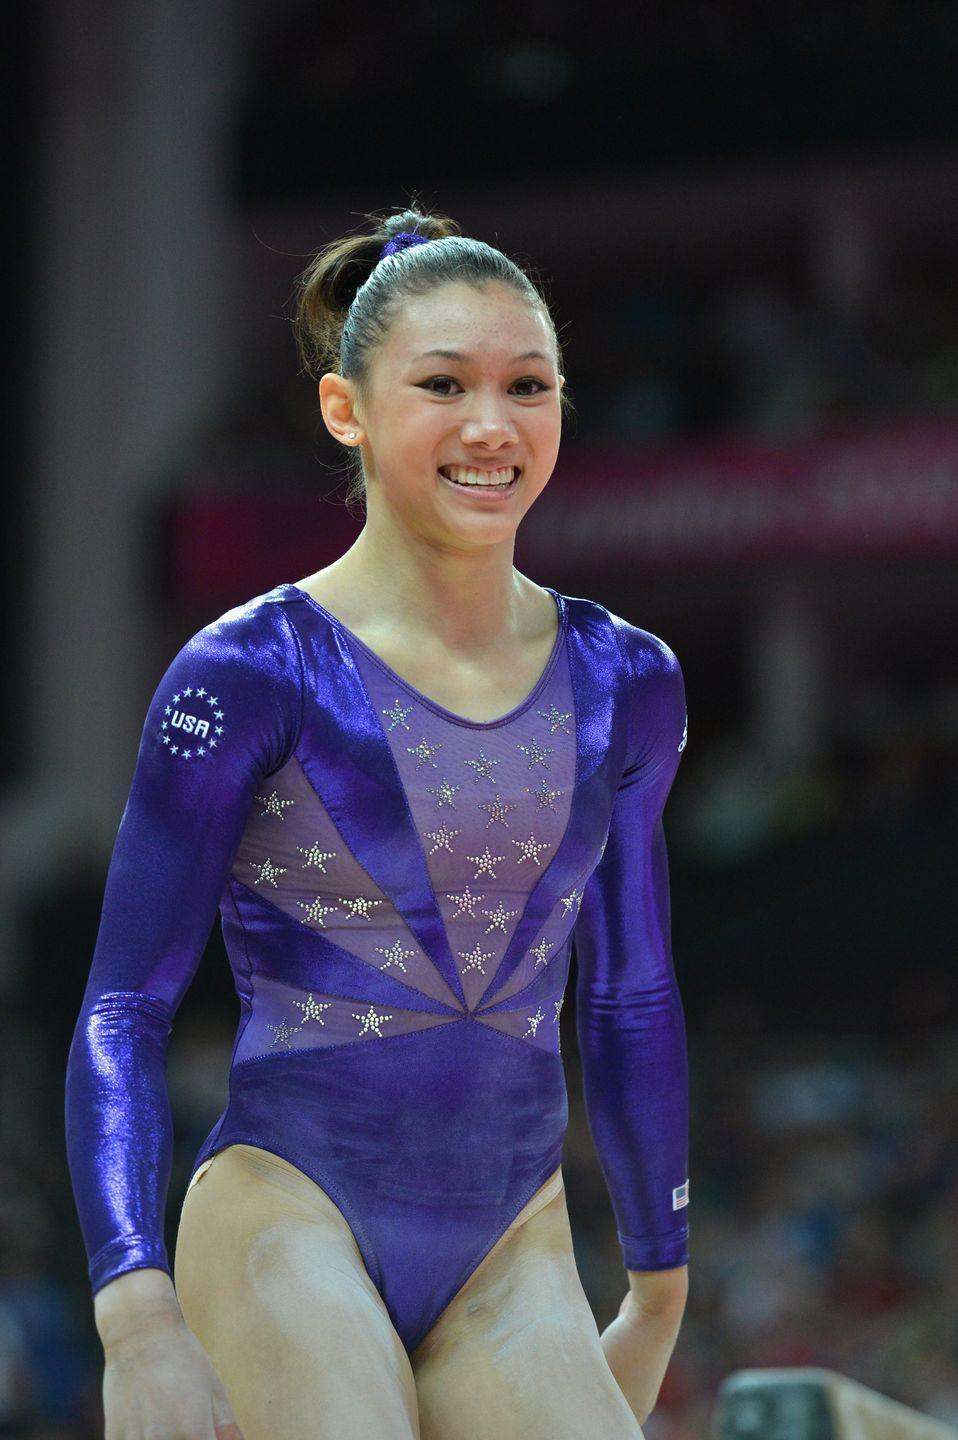 """<p>Kyla Ross rounded out the U.S. gymnastics """"Fierce Five"""" at the 2012 London Olympic Games. Ross earned both a team gold medal as well as an individual silver medal at the Games. </p>"""